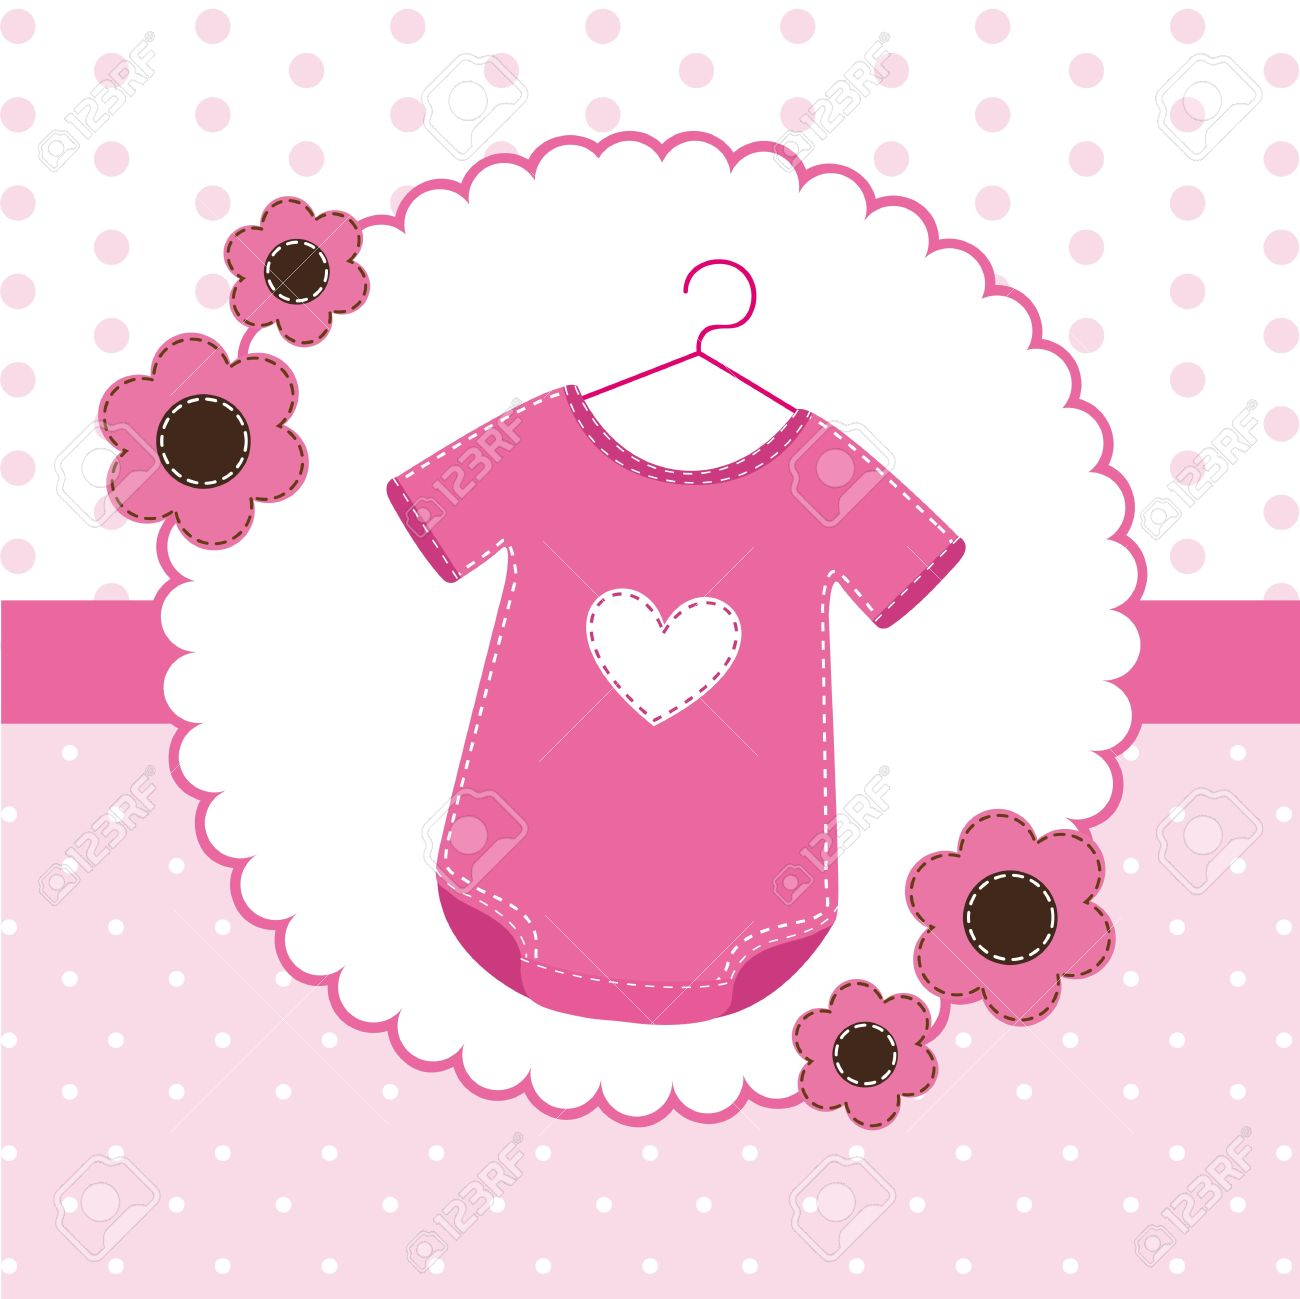 Awesome Pink Baby Shower Card With Clothes Baby. Stock Vector   14039073